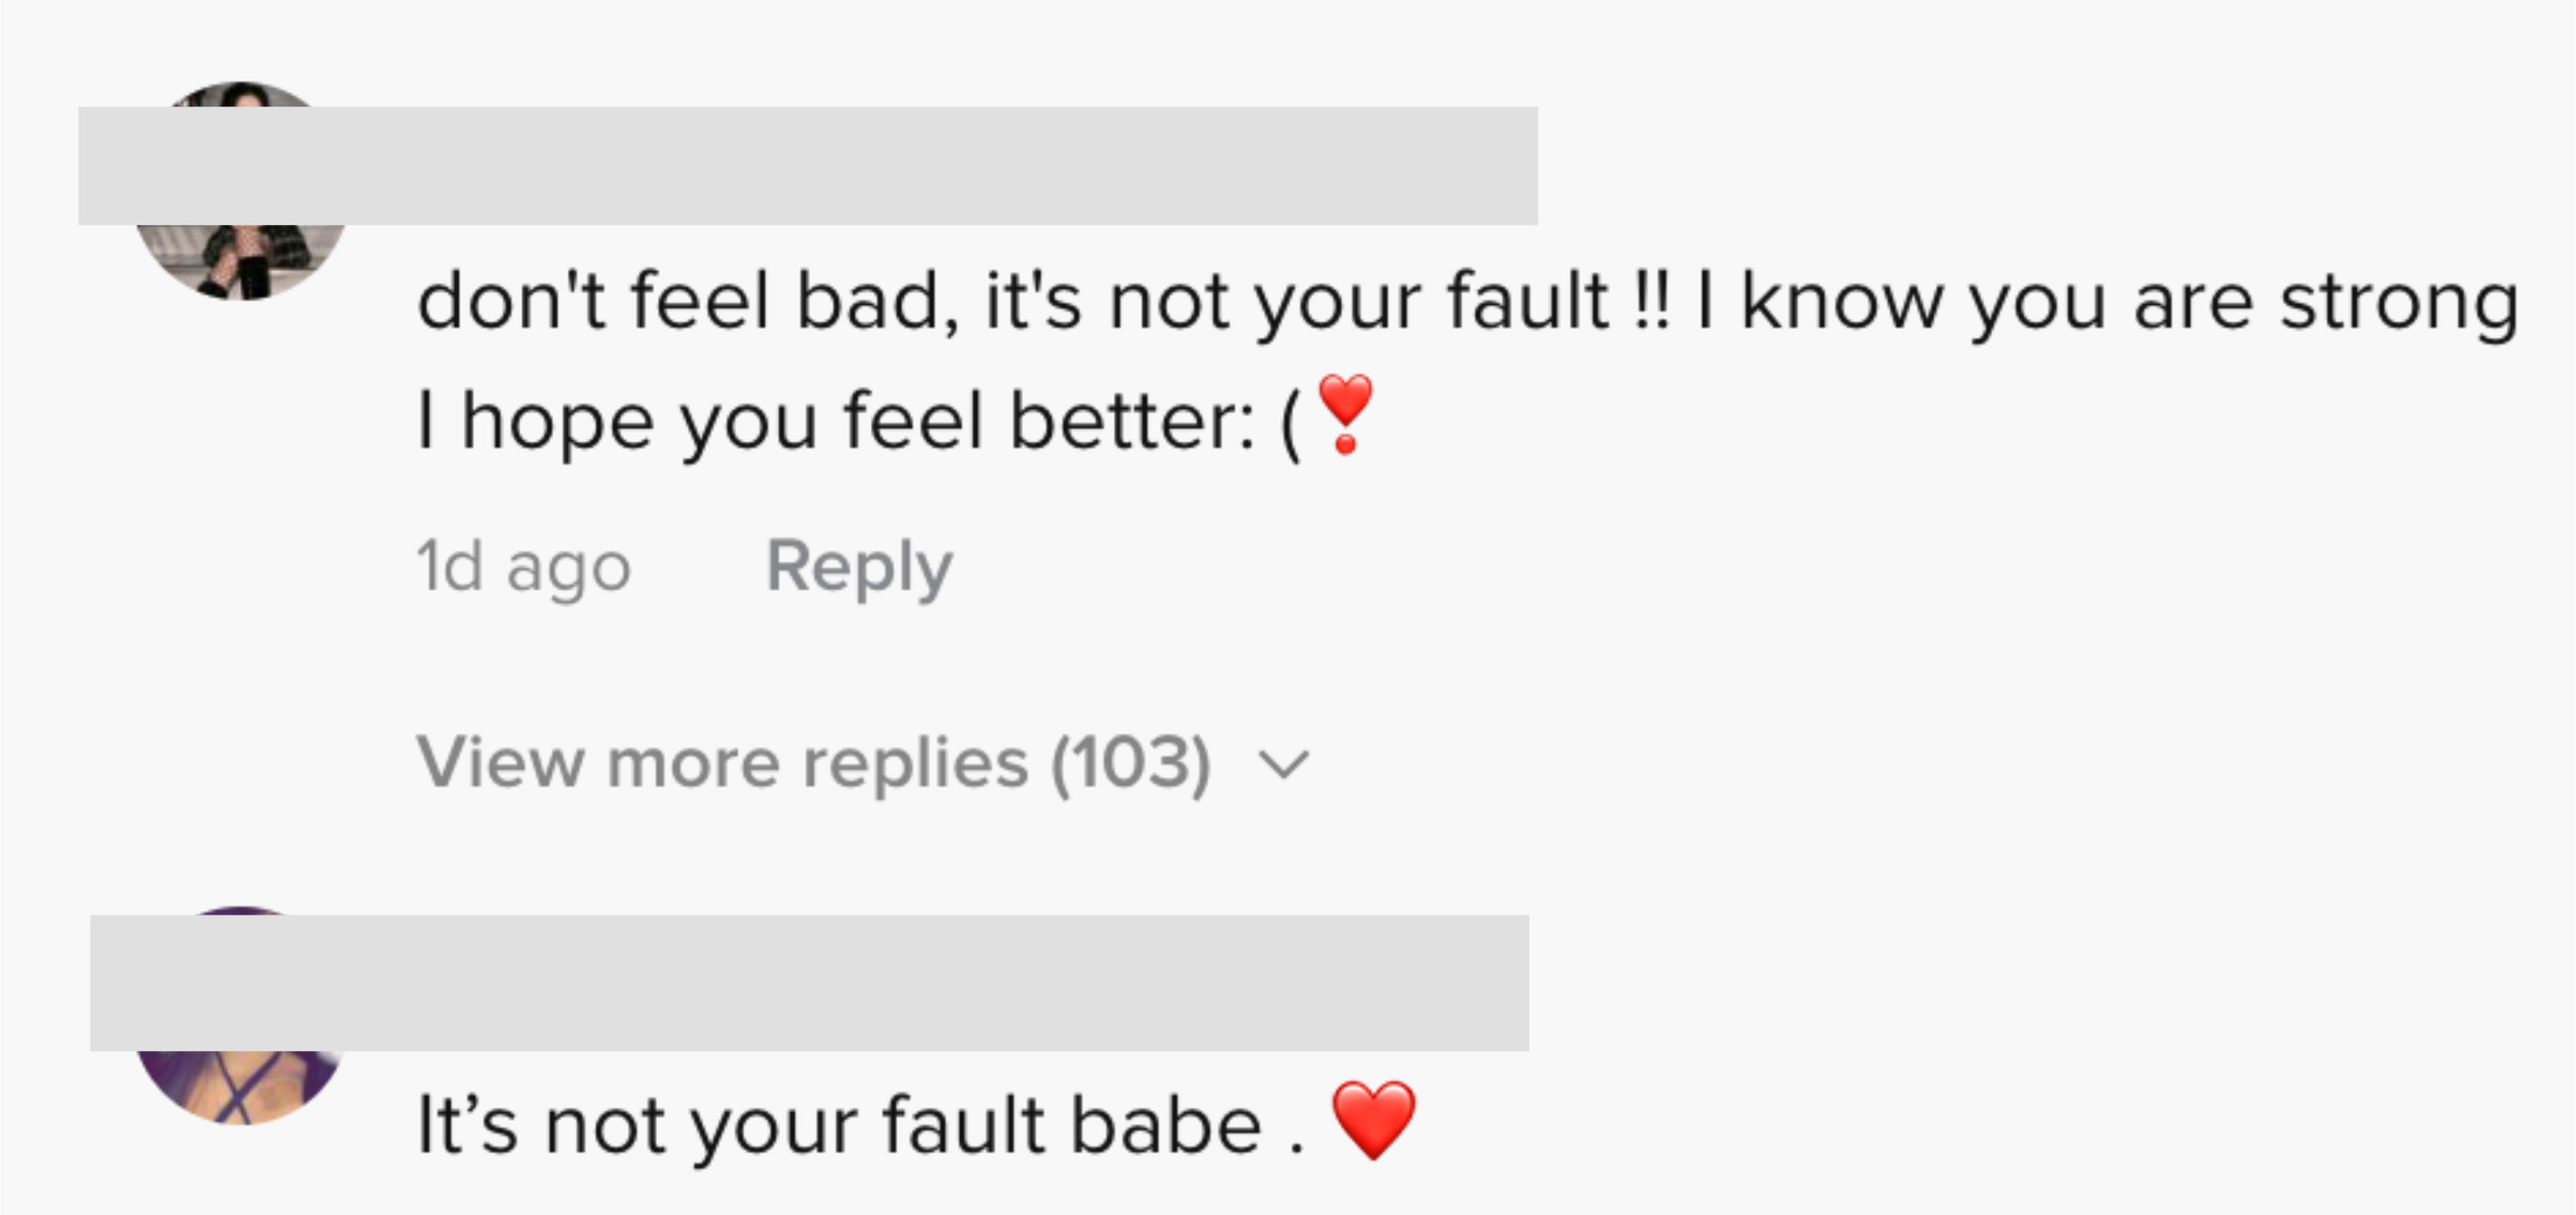 """One person said, """"don't feel bad, it's not your fault!! I know you are strong I hope you feel better :("""